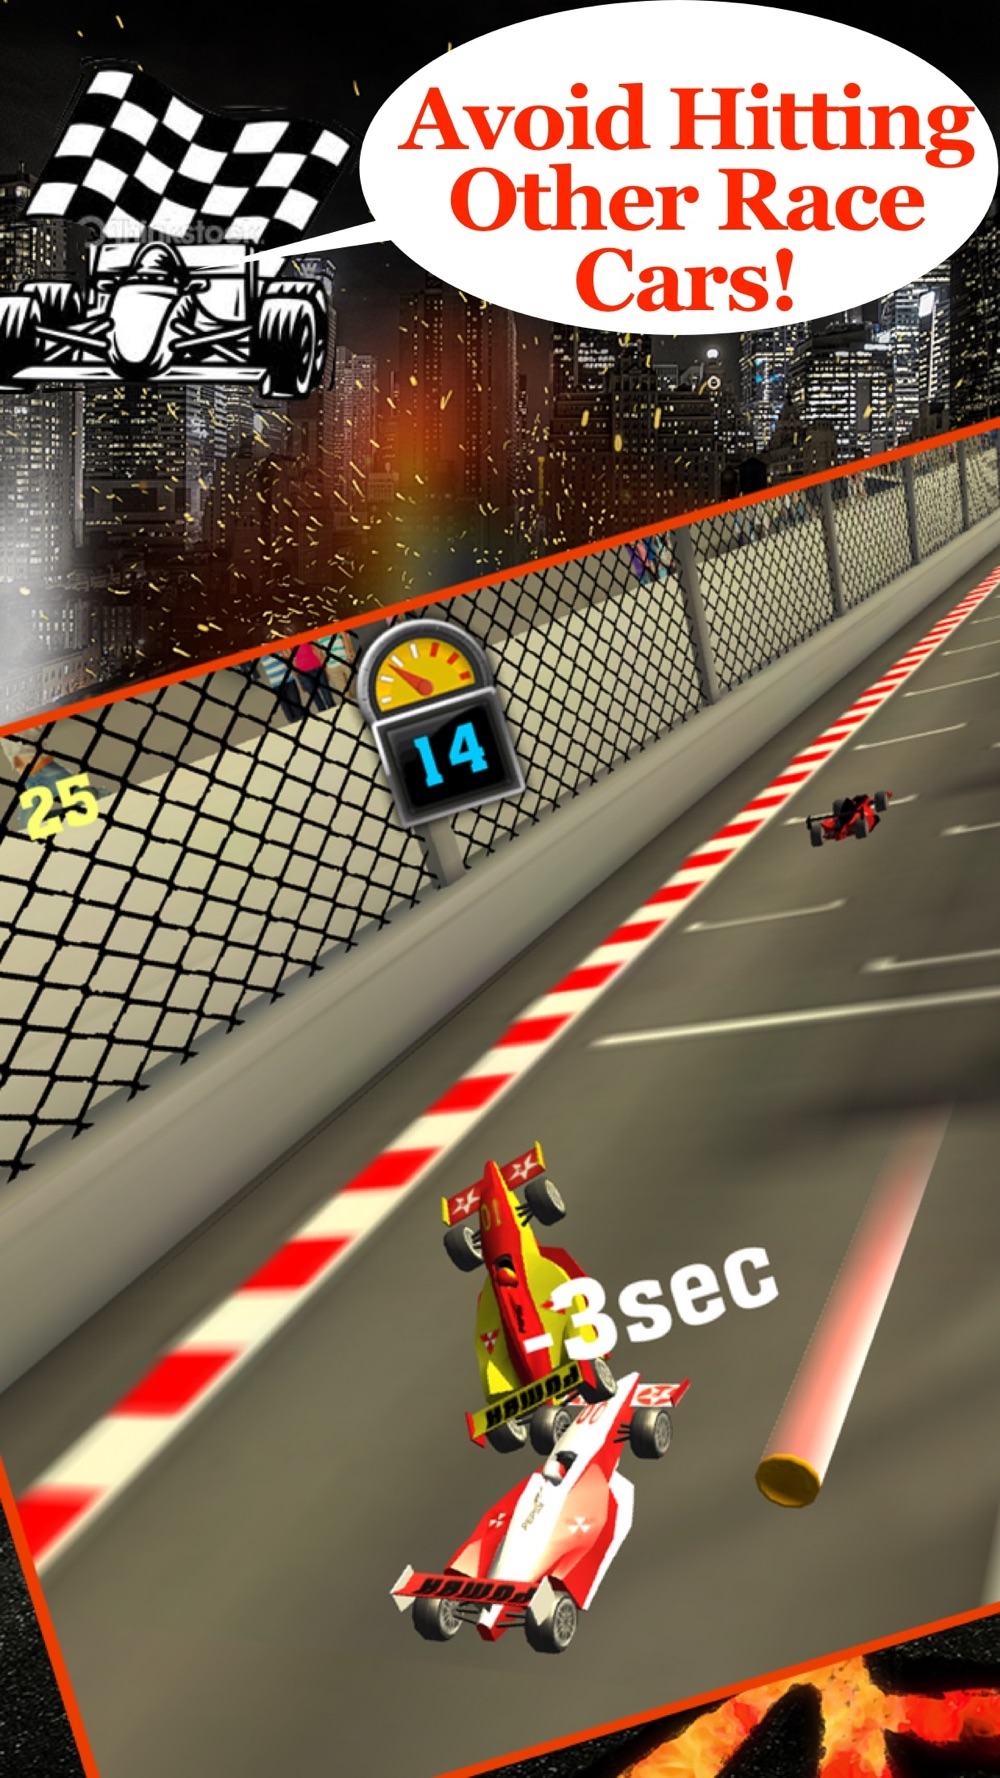 An Extreme 3D Indy Car Race Fun Free High Speed Real Racing Game hack tool